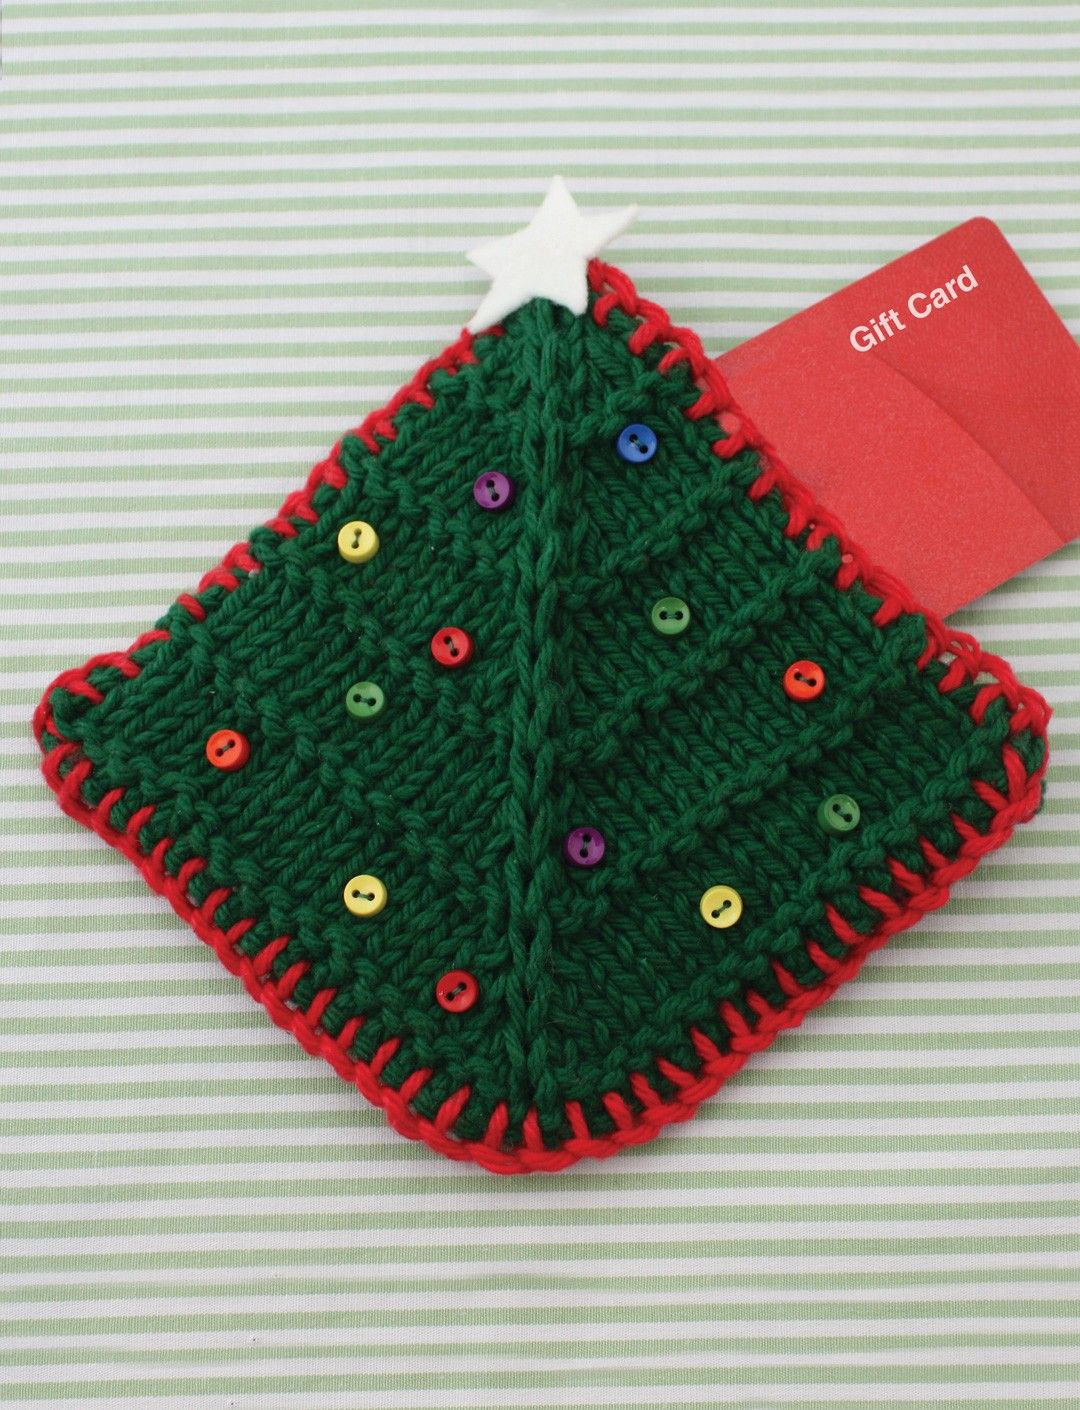 Yarnspirations.com - Lily Christmas Tree Gift Card Cozy ...